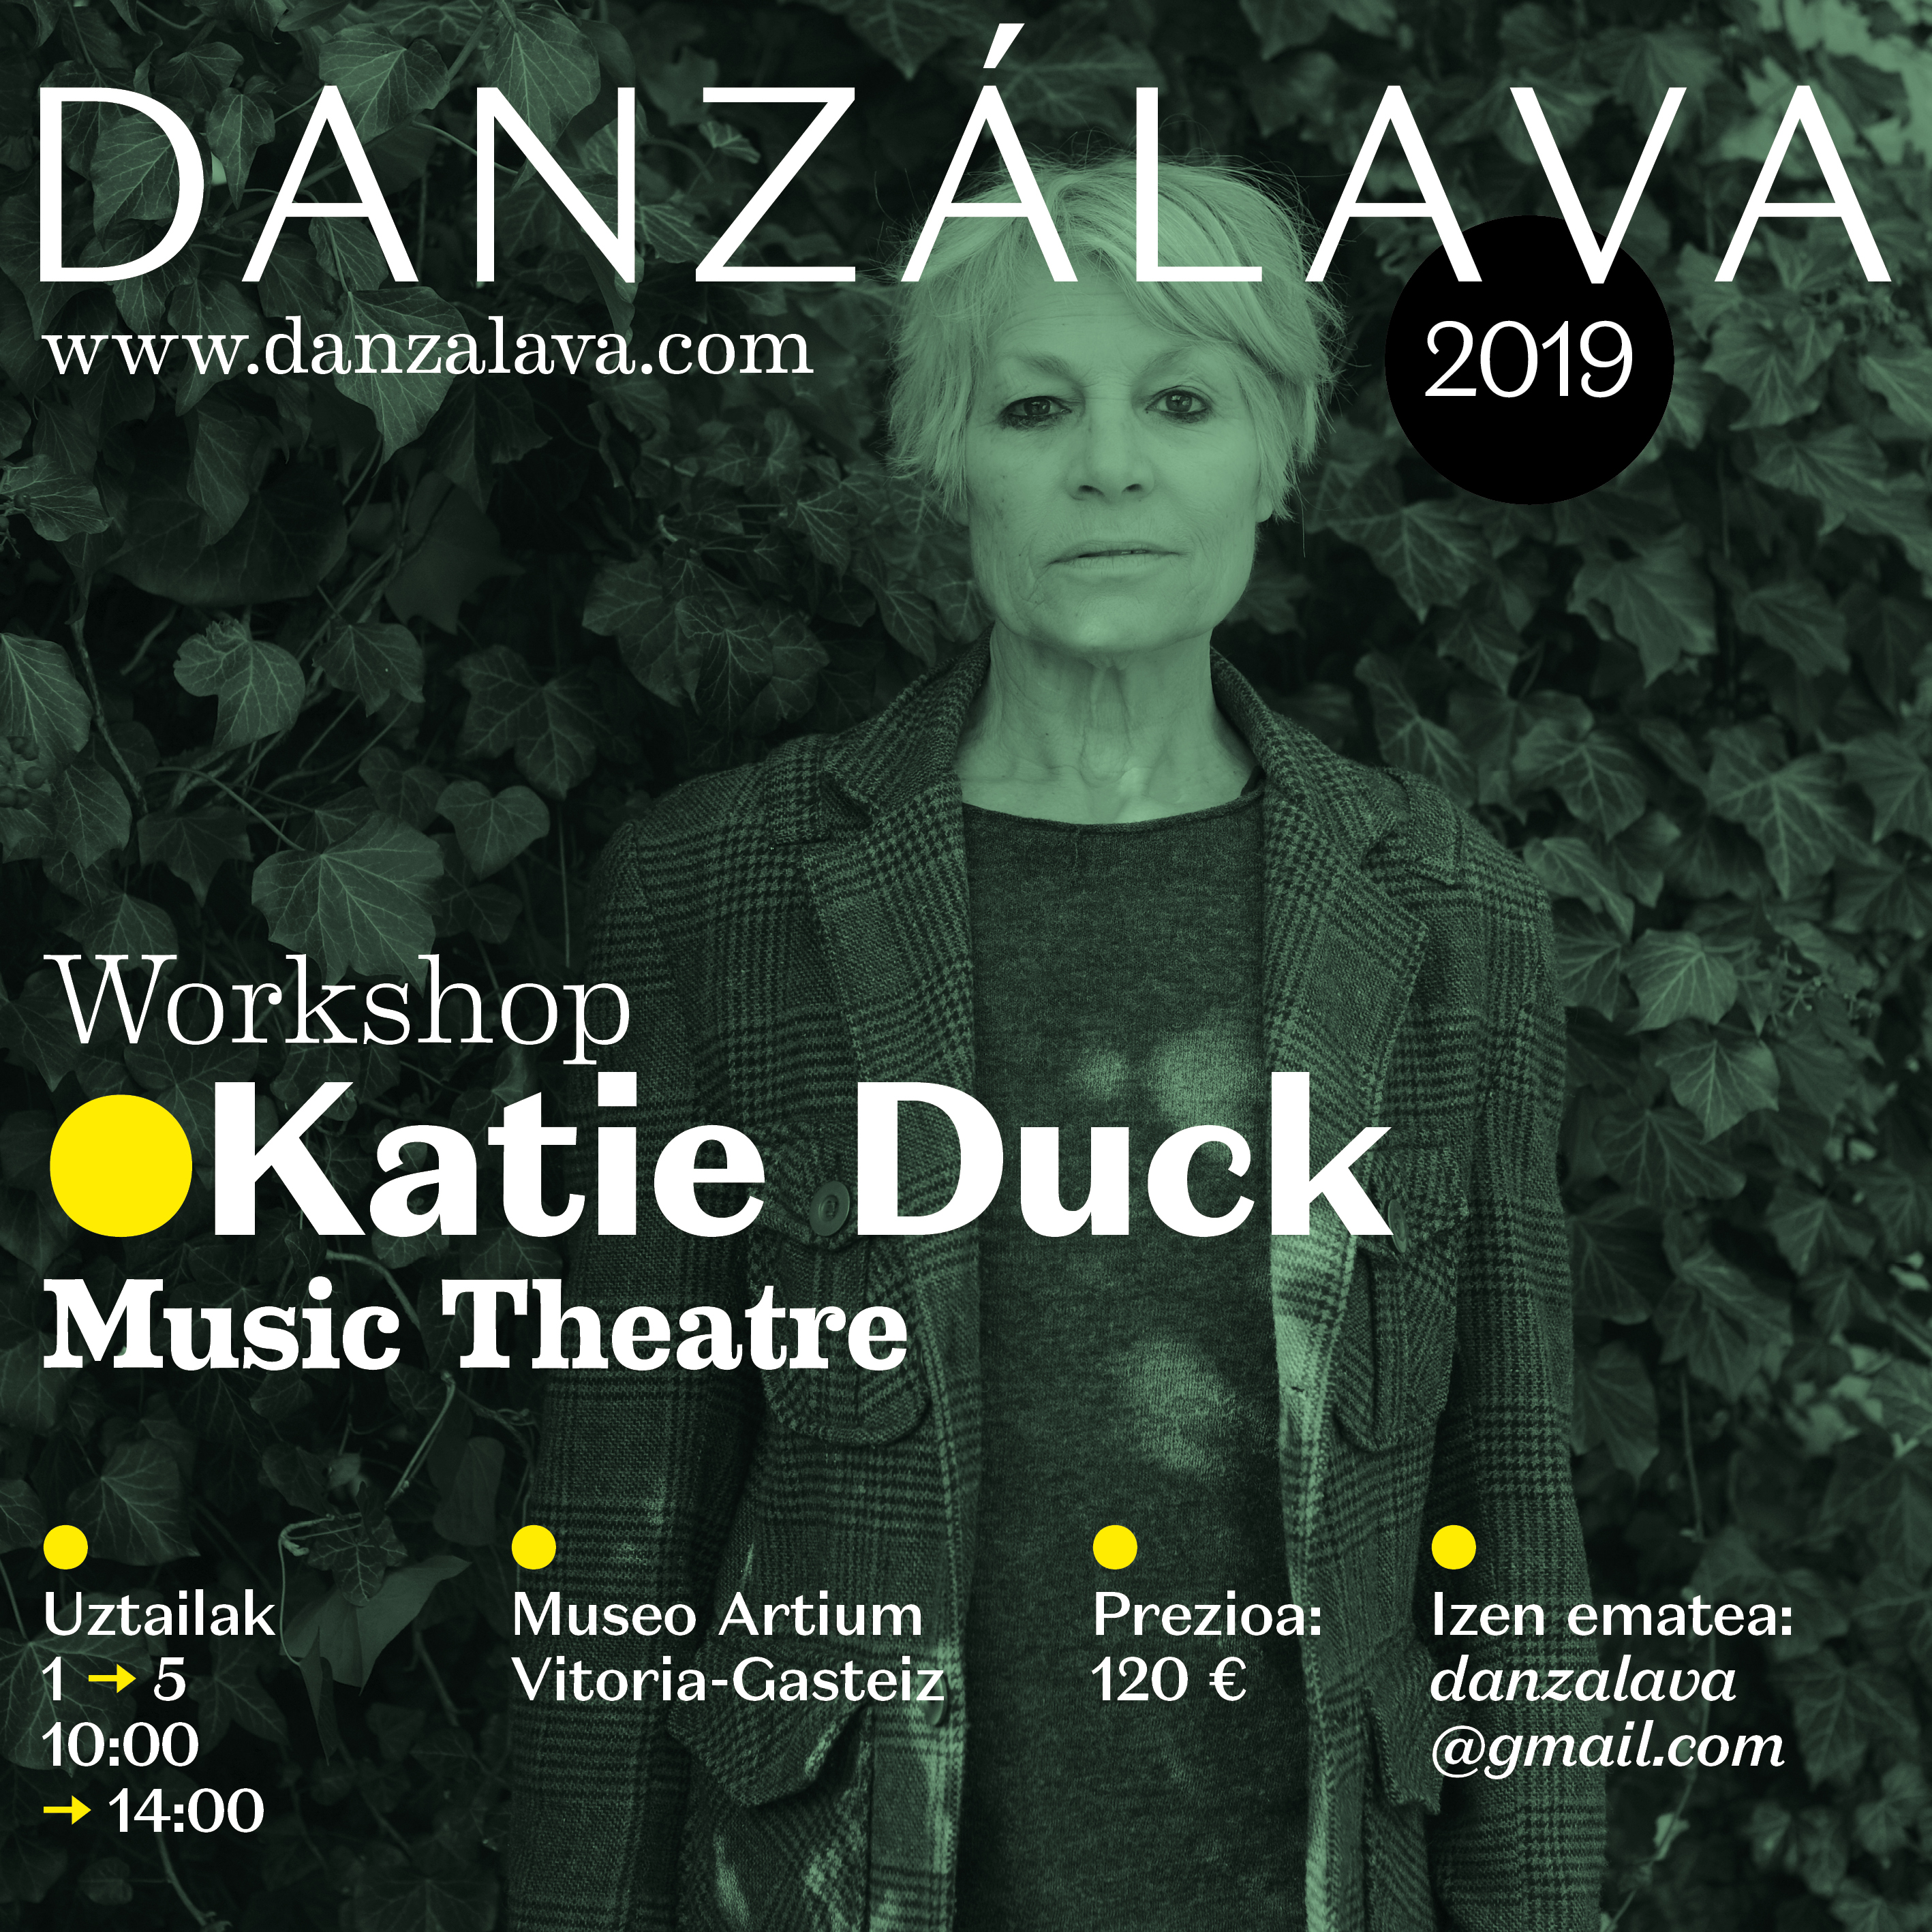 DANZALAVA2019_KATIEDUCK_workshop_digital_EUS